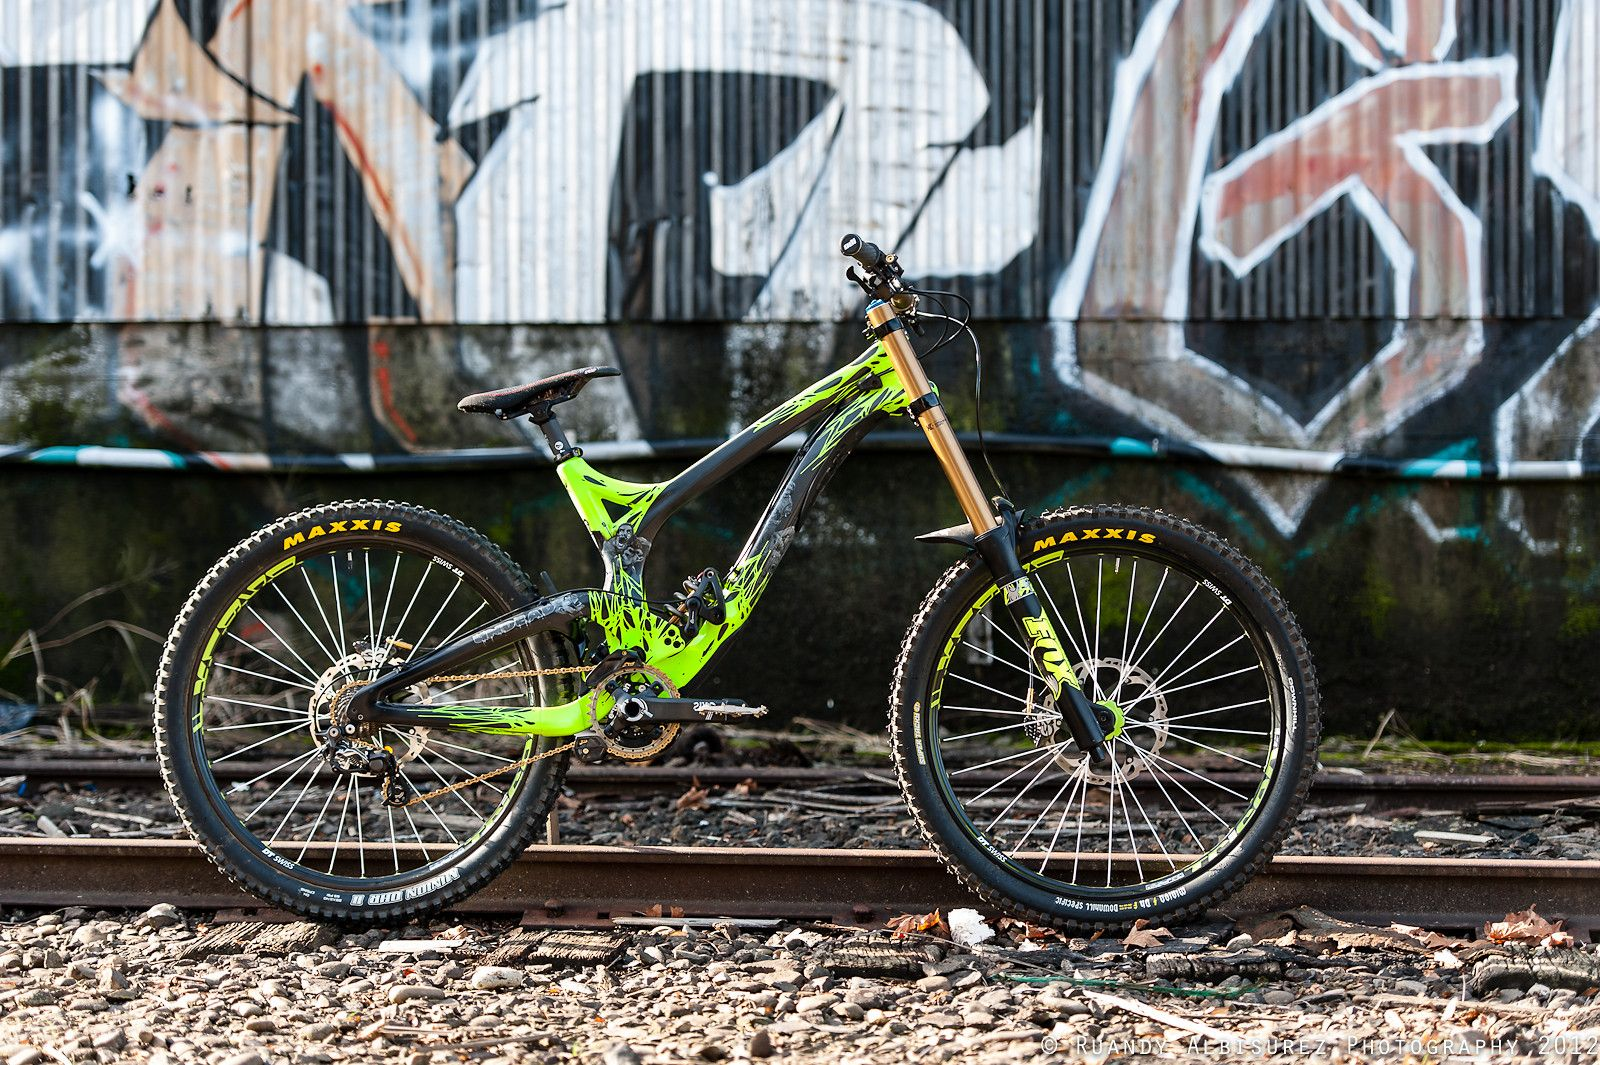 613c2545dd6 Evil: Undead Nightmare. Vital MTB. Yea I just died a little inside from  seeing this. I'm speechless.